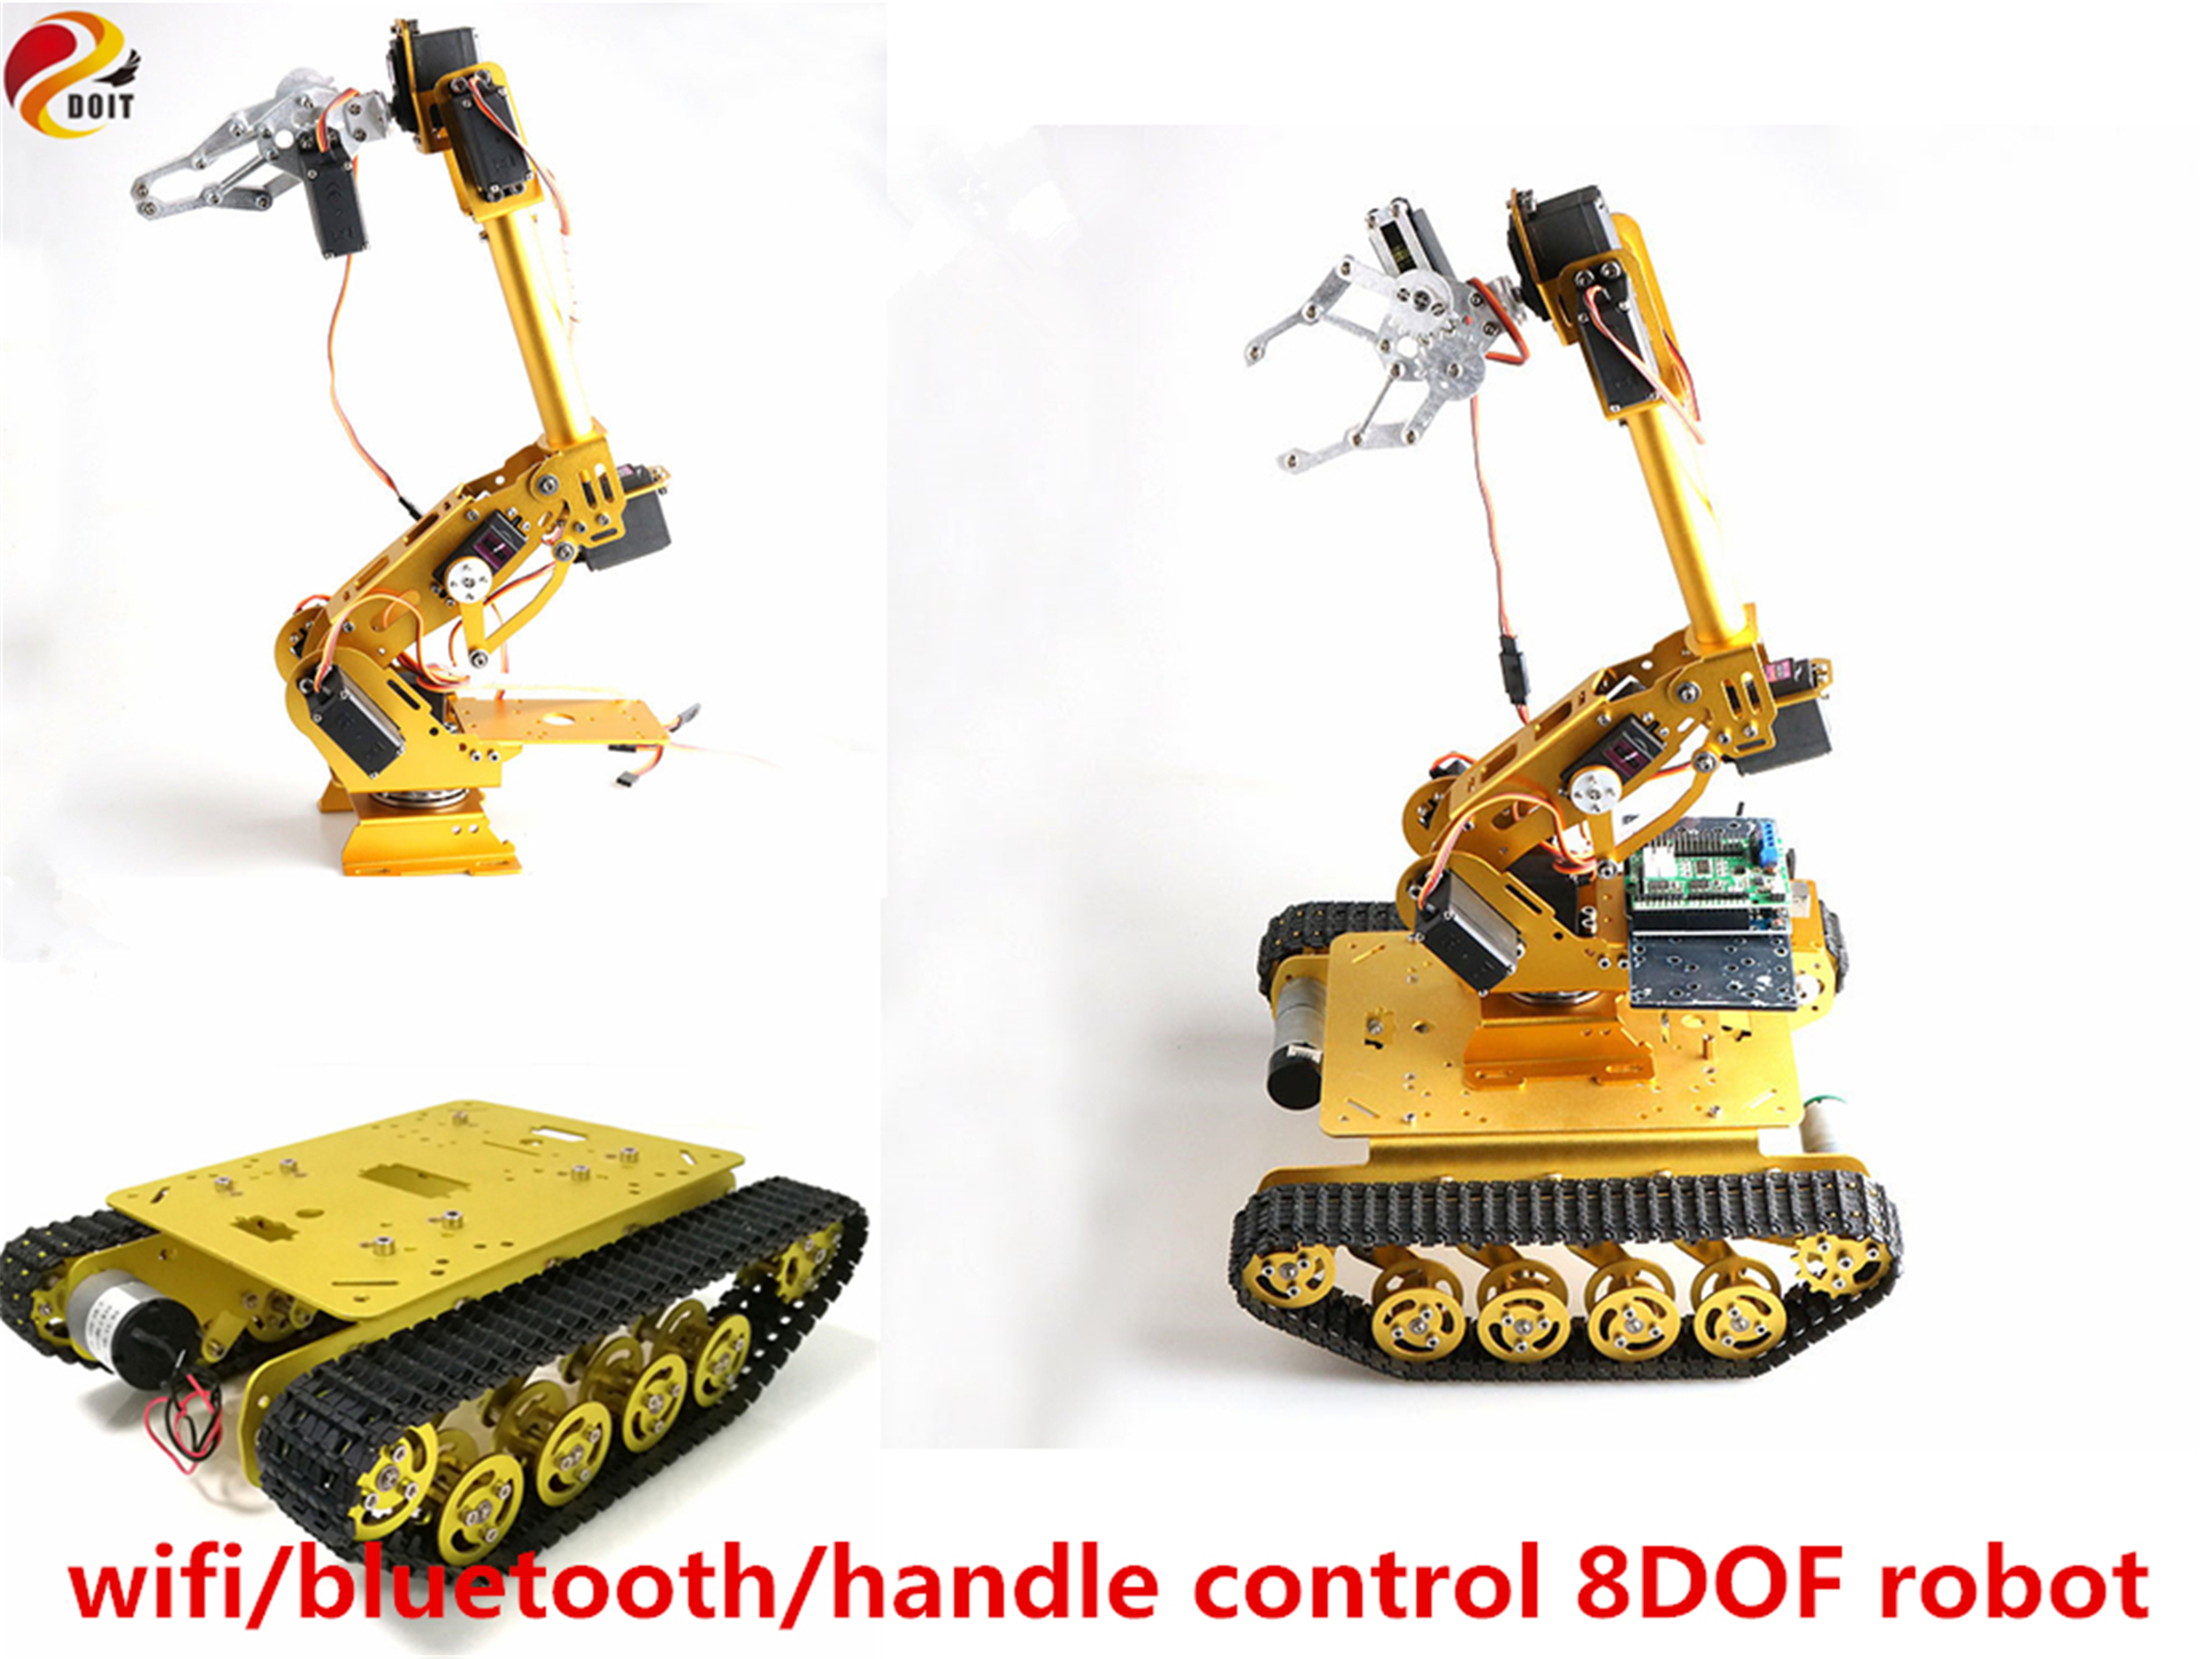 SZDOIT Wifi/Bluetooth/Handle Control 8DOF Vehicle Robot 8-Axis Robot Arm with Gripper +TS100 Tank Chassis Kit Servos for Arduino